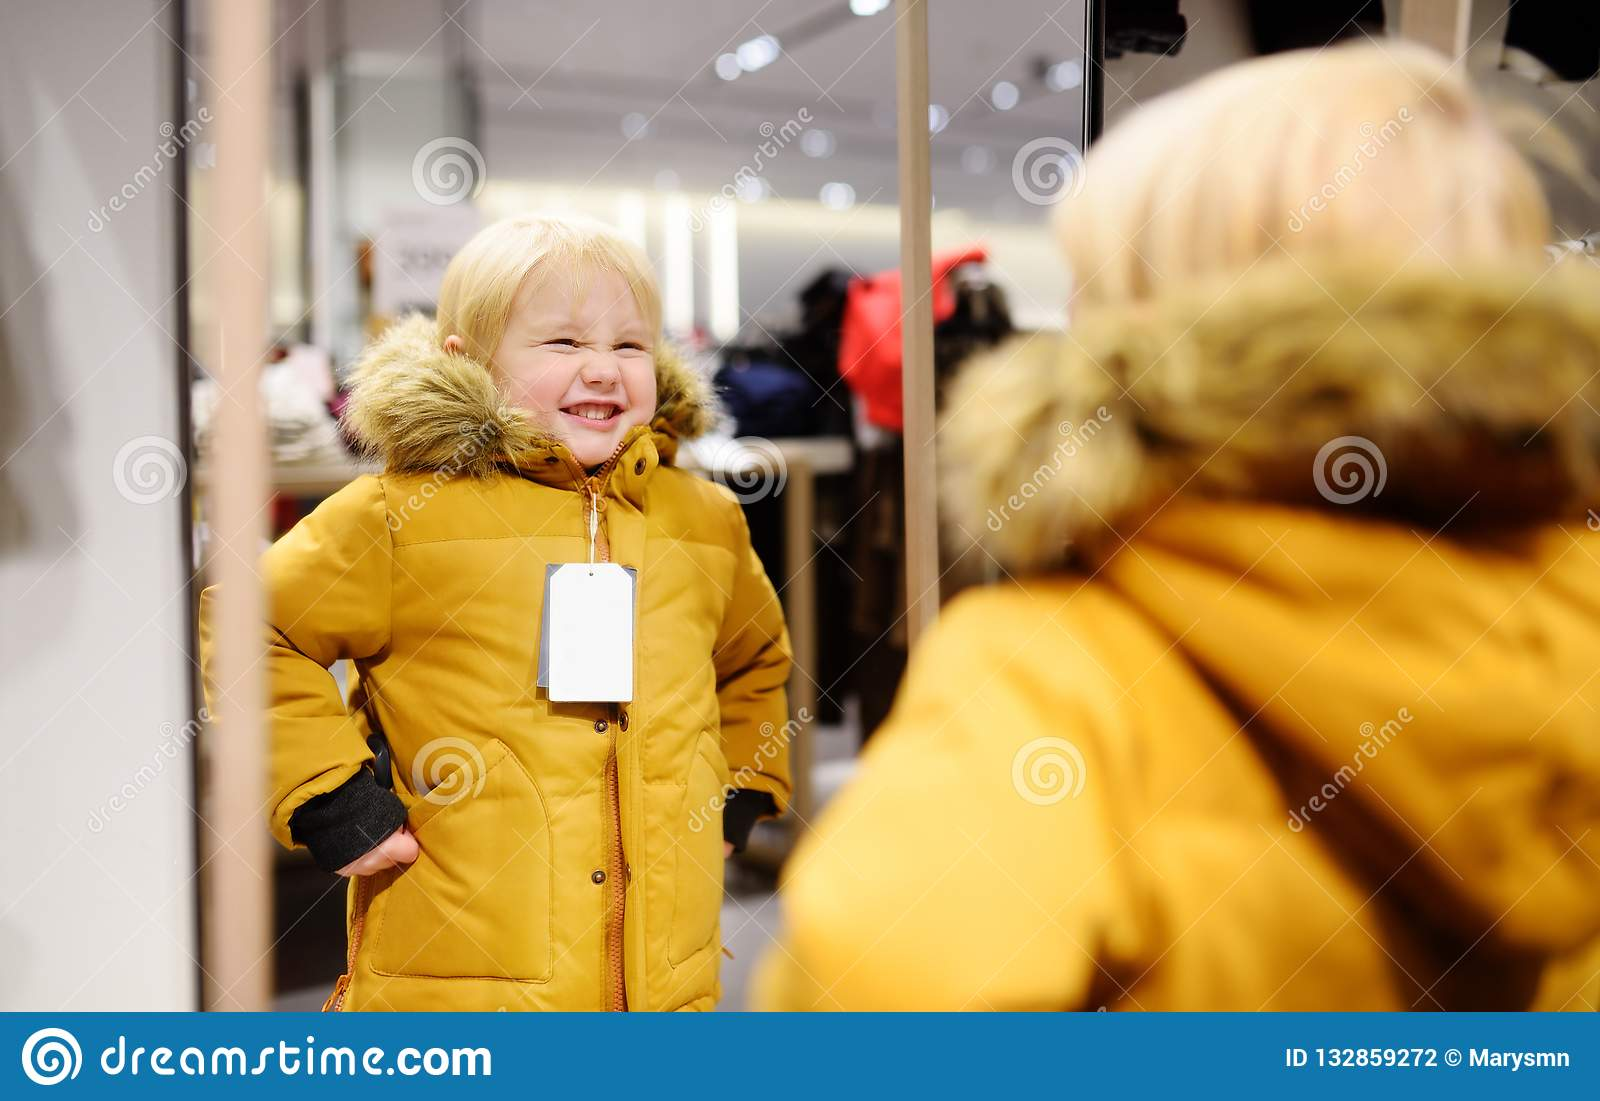 0513c6e43 Cute little boy trying new coat during shopping. Fashion warm clothes for  fall or winter. Kid/child in fitting room or in shopping center/mall